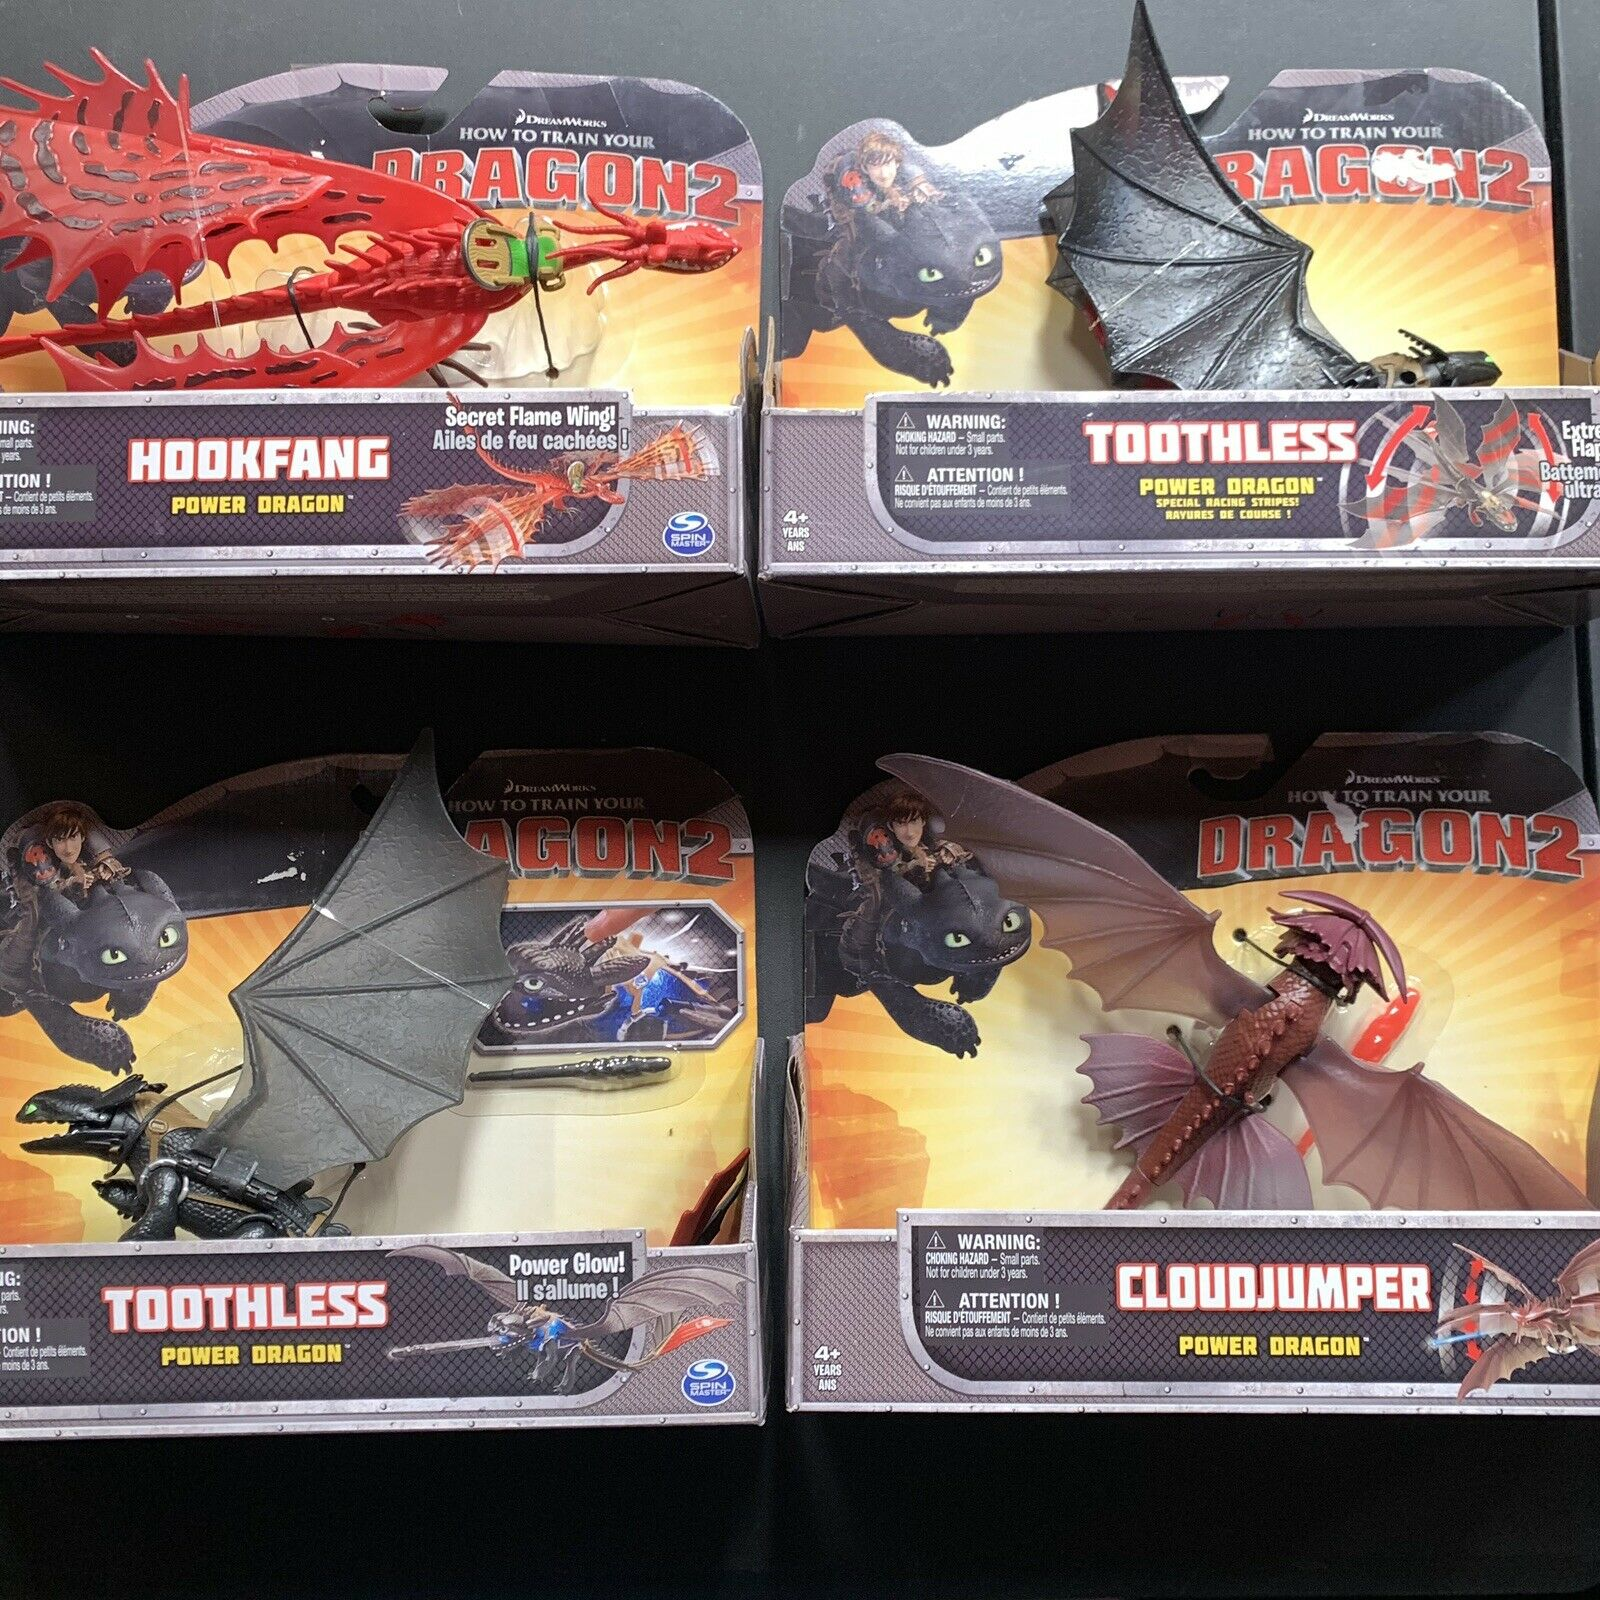 HOW TO TRAIN YOUR DRAGON 2 POWER DRAGONS LARGE ACTION FIGURE LOT OF 4 Toothless